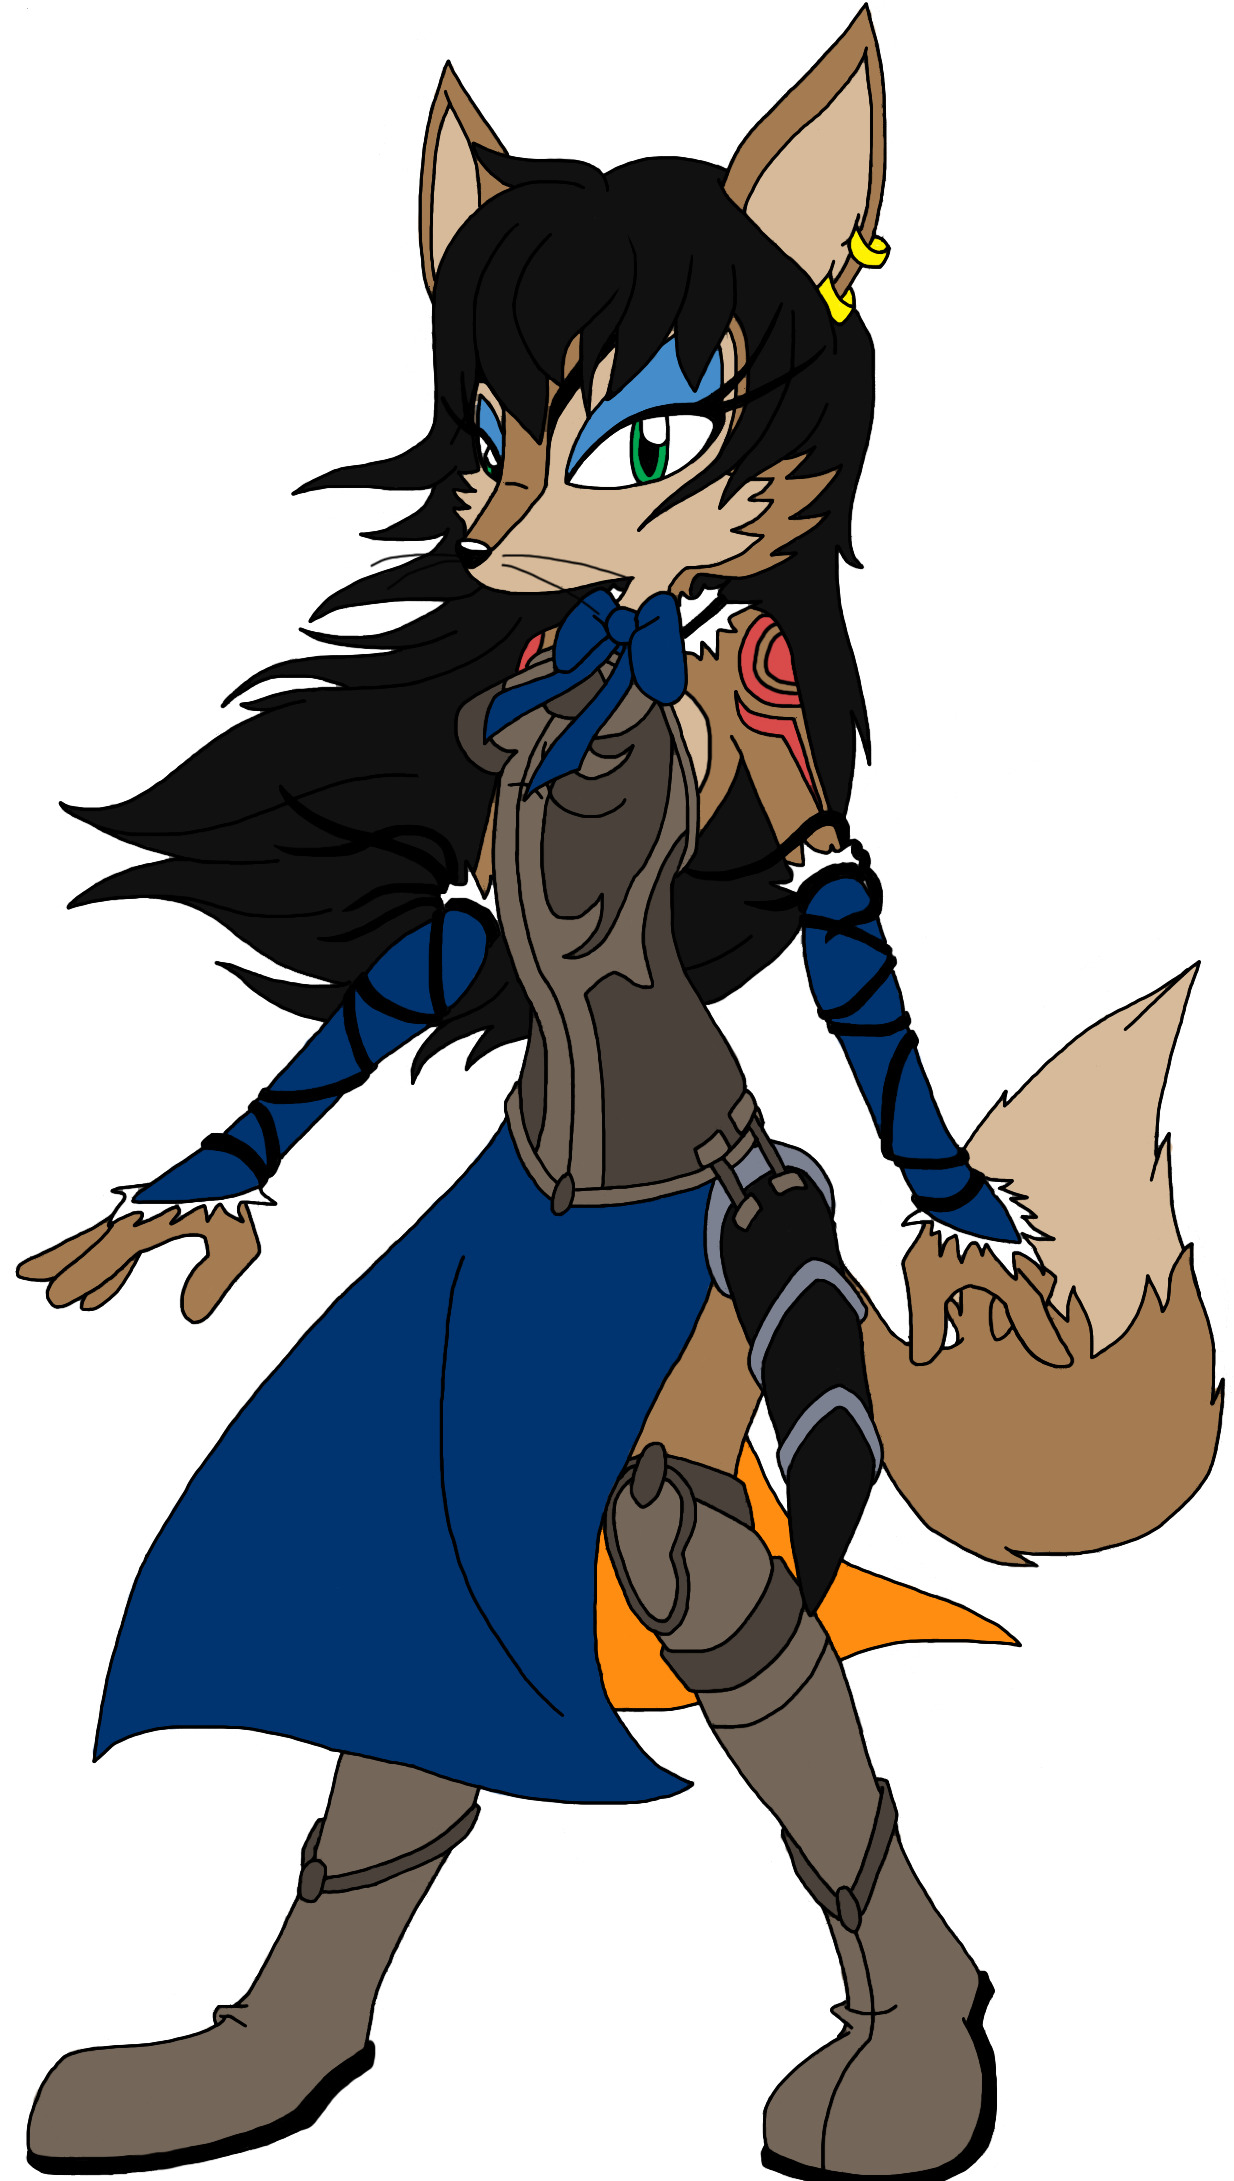 Shanoa the Fox.